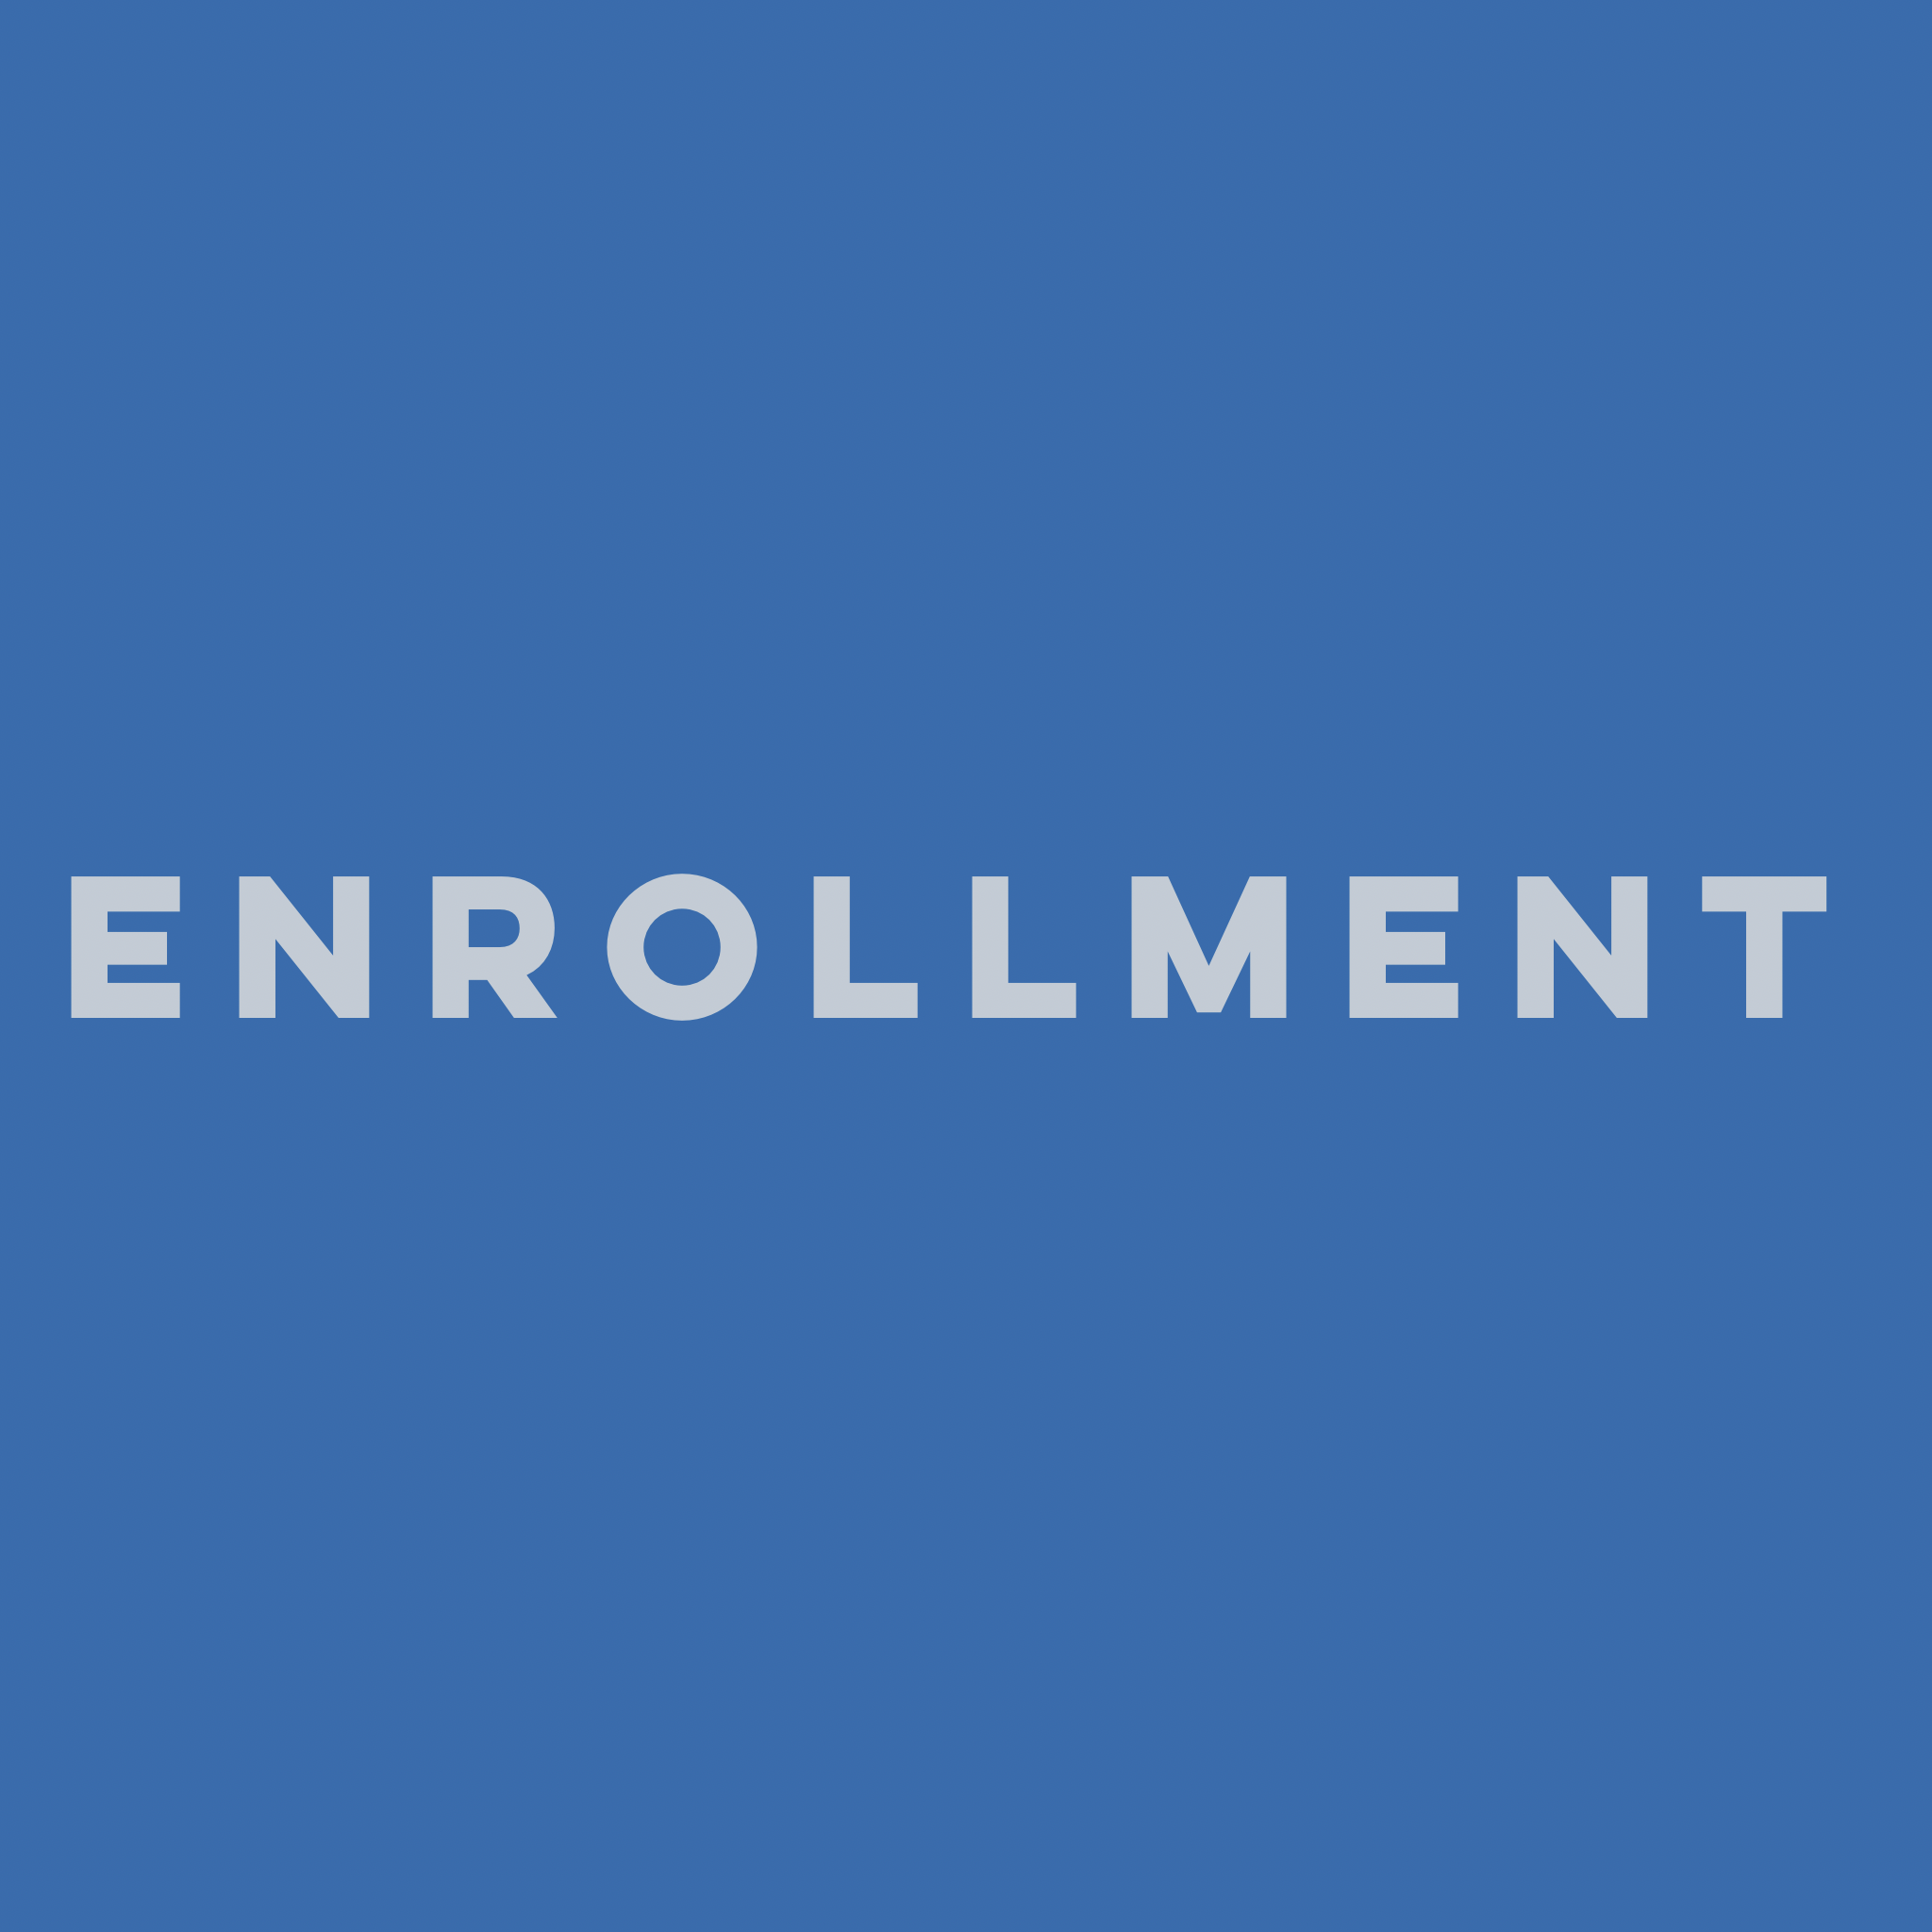 Enrollment at The Clearwater School - Bothell, WA